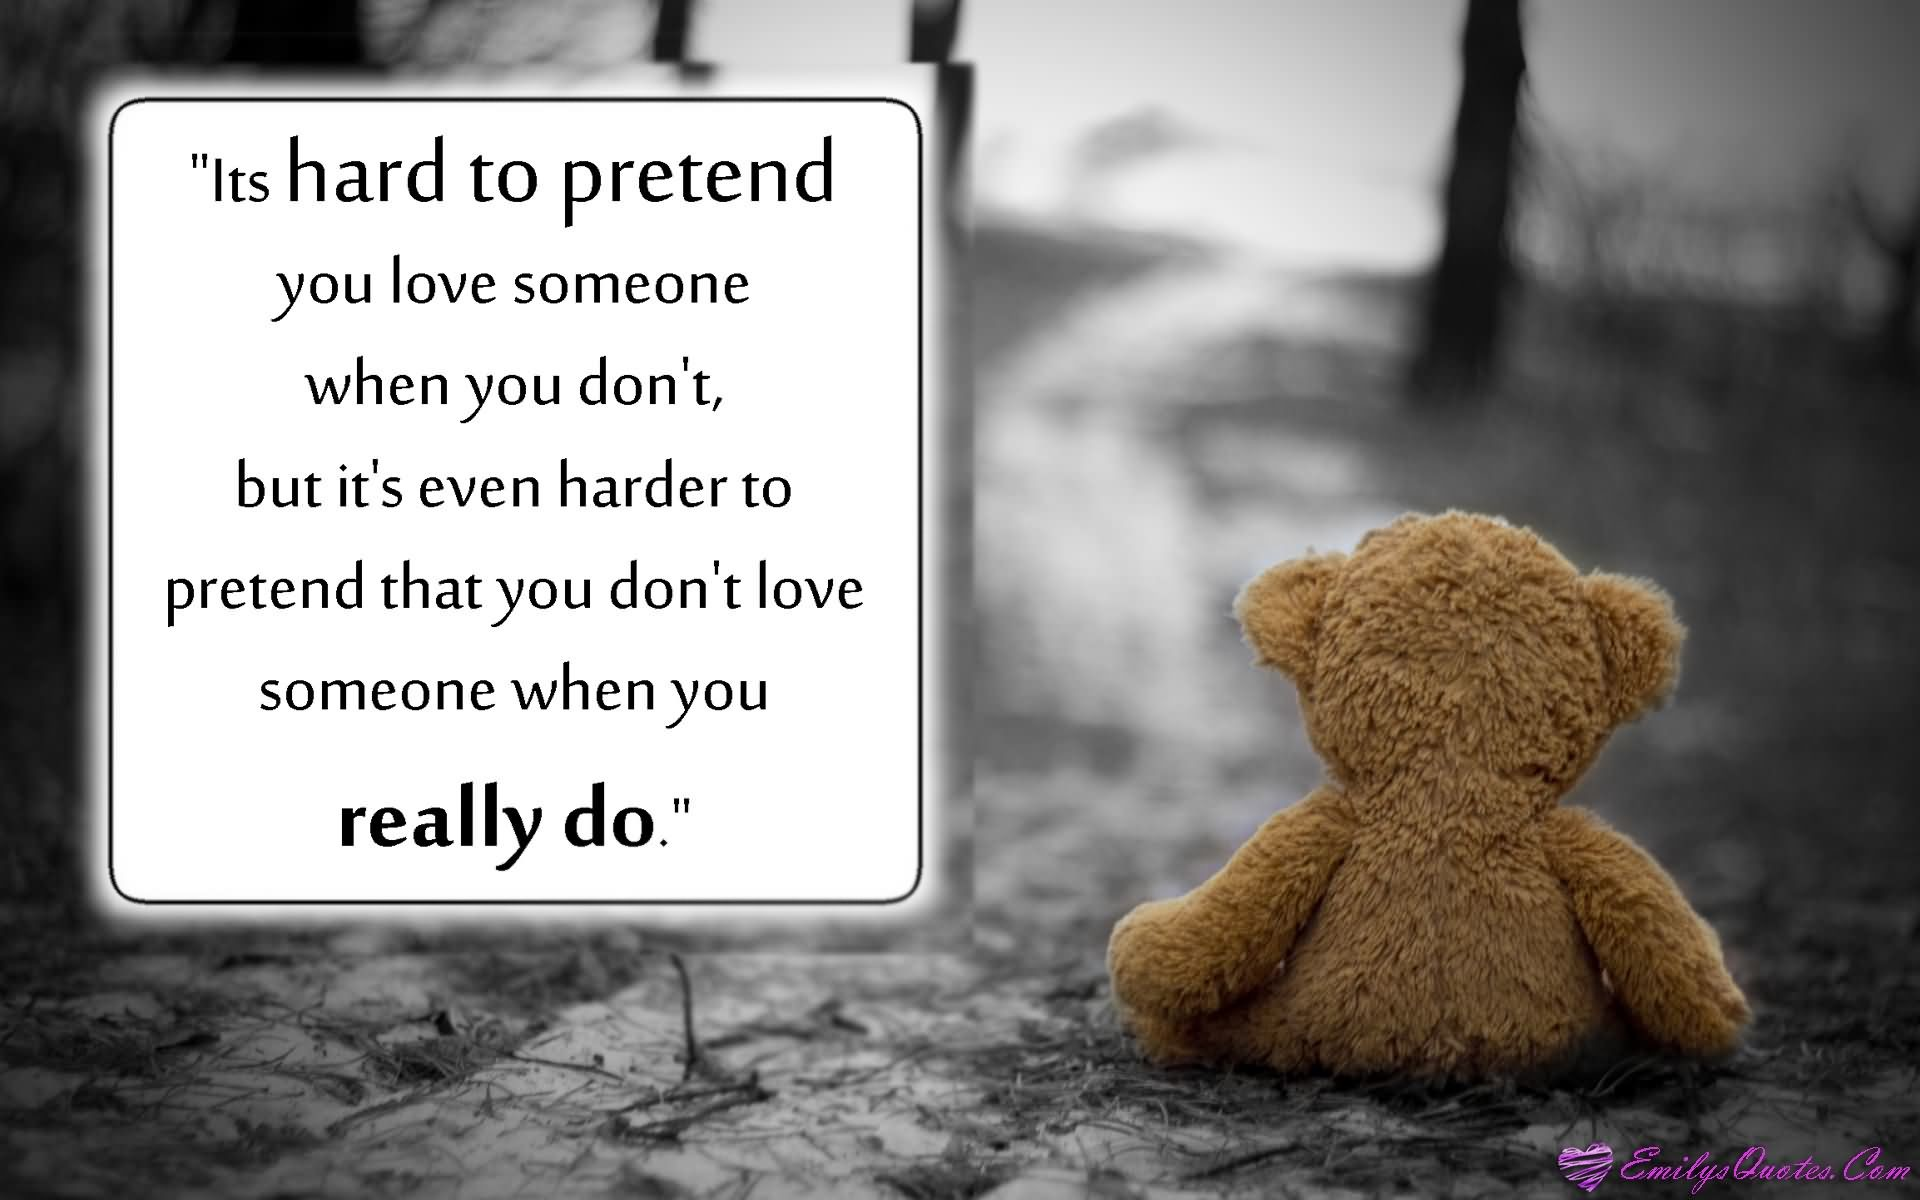 Wallpaper Of Care When You Are Angry 2 Wallpaper Caring - Broken Heart Sad Messages - HD Wallpaper